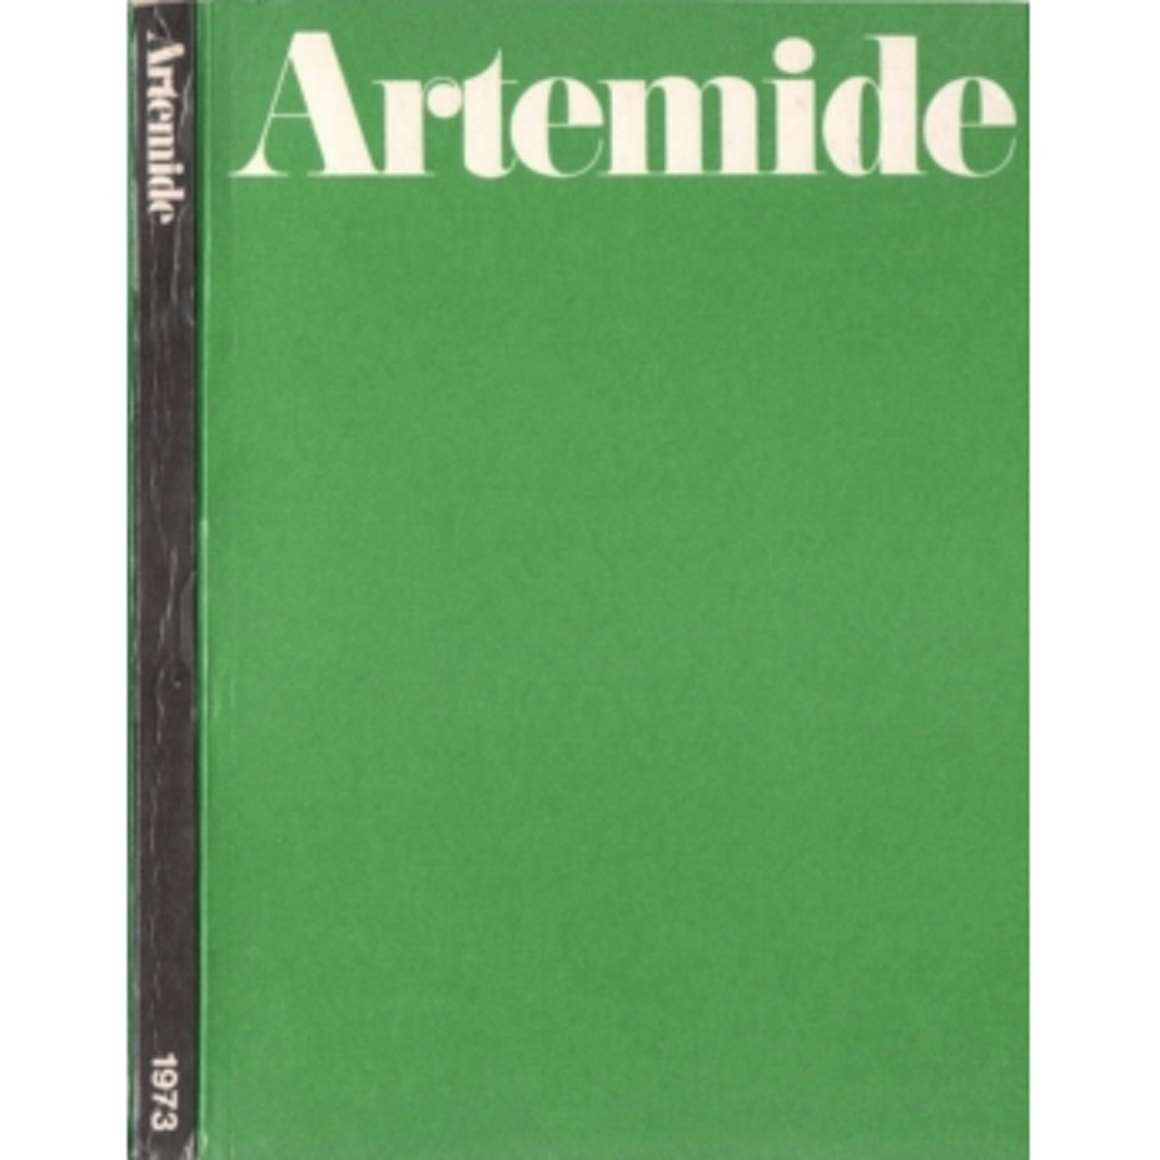 Vintage Lighting Catalogues - Artemide Catalogue 1973